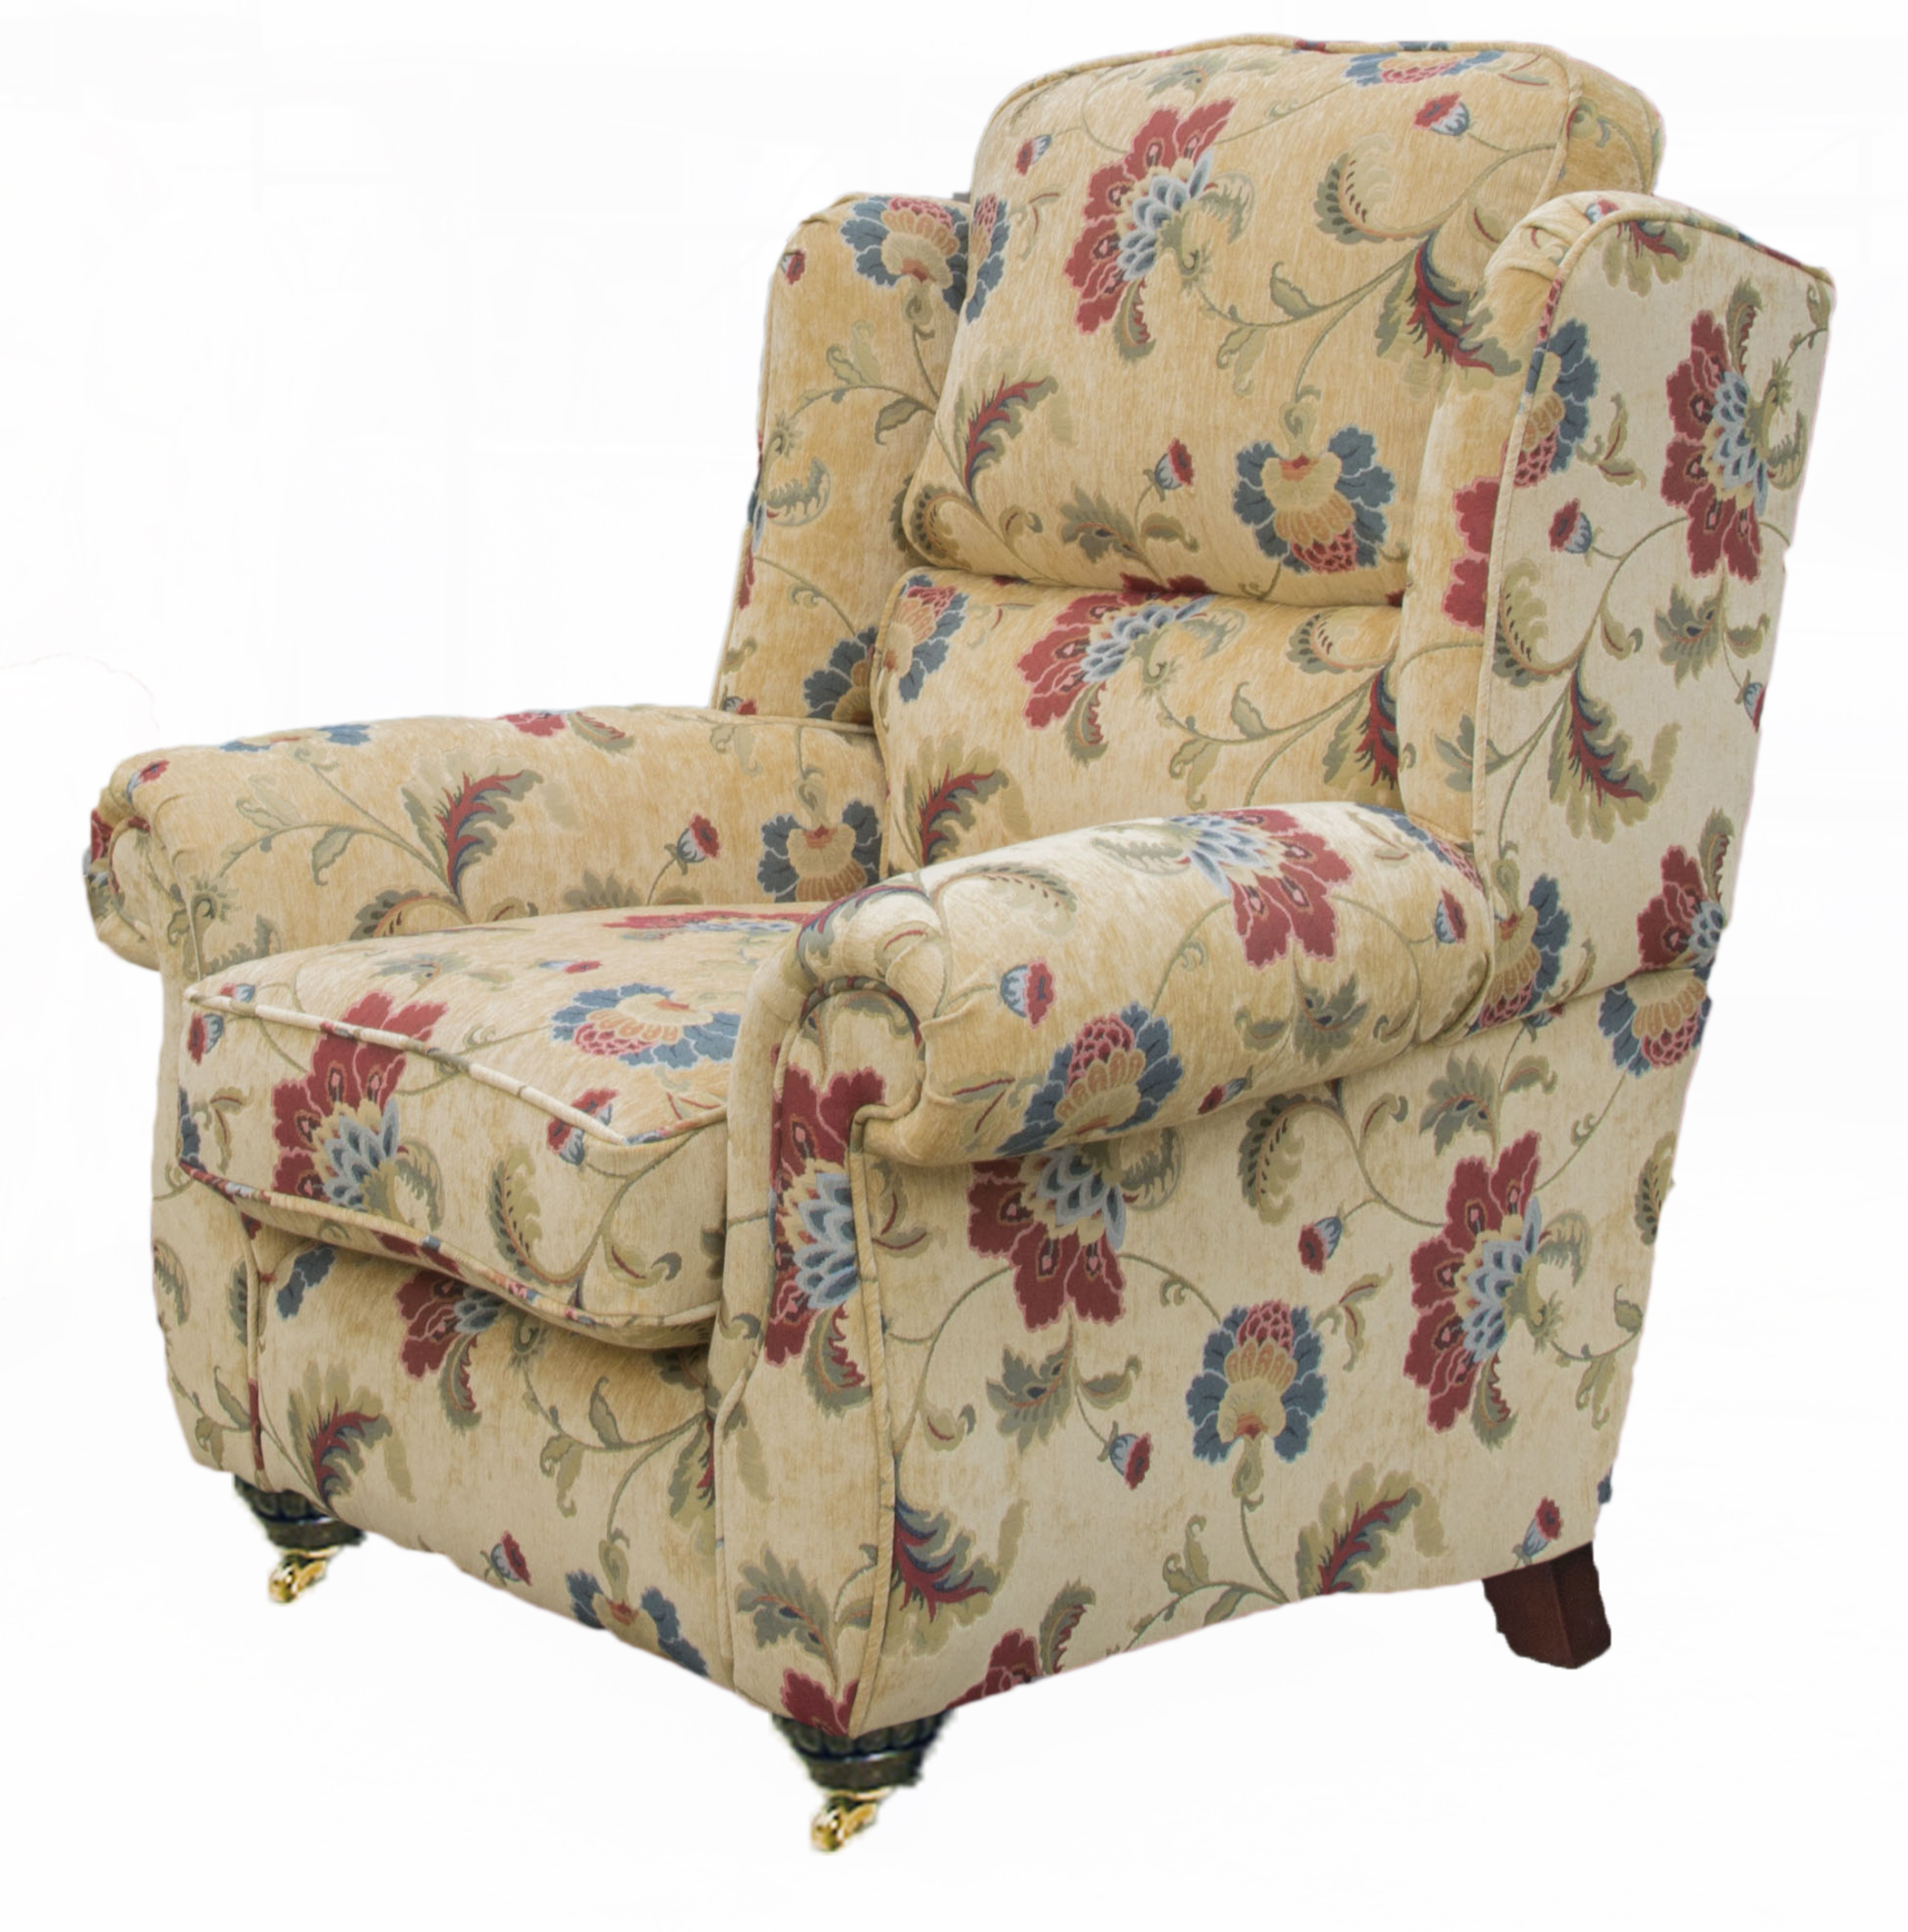 Greville (gents) chair side